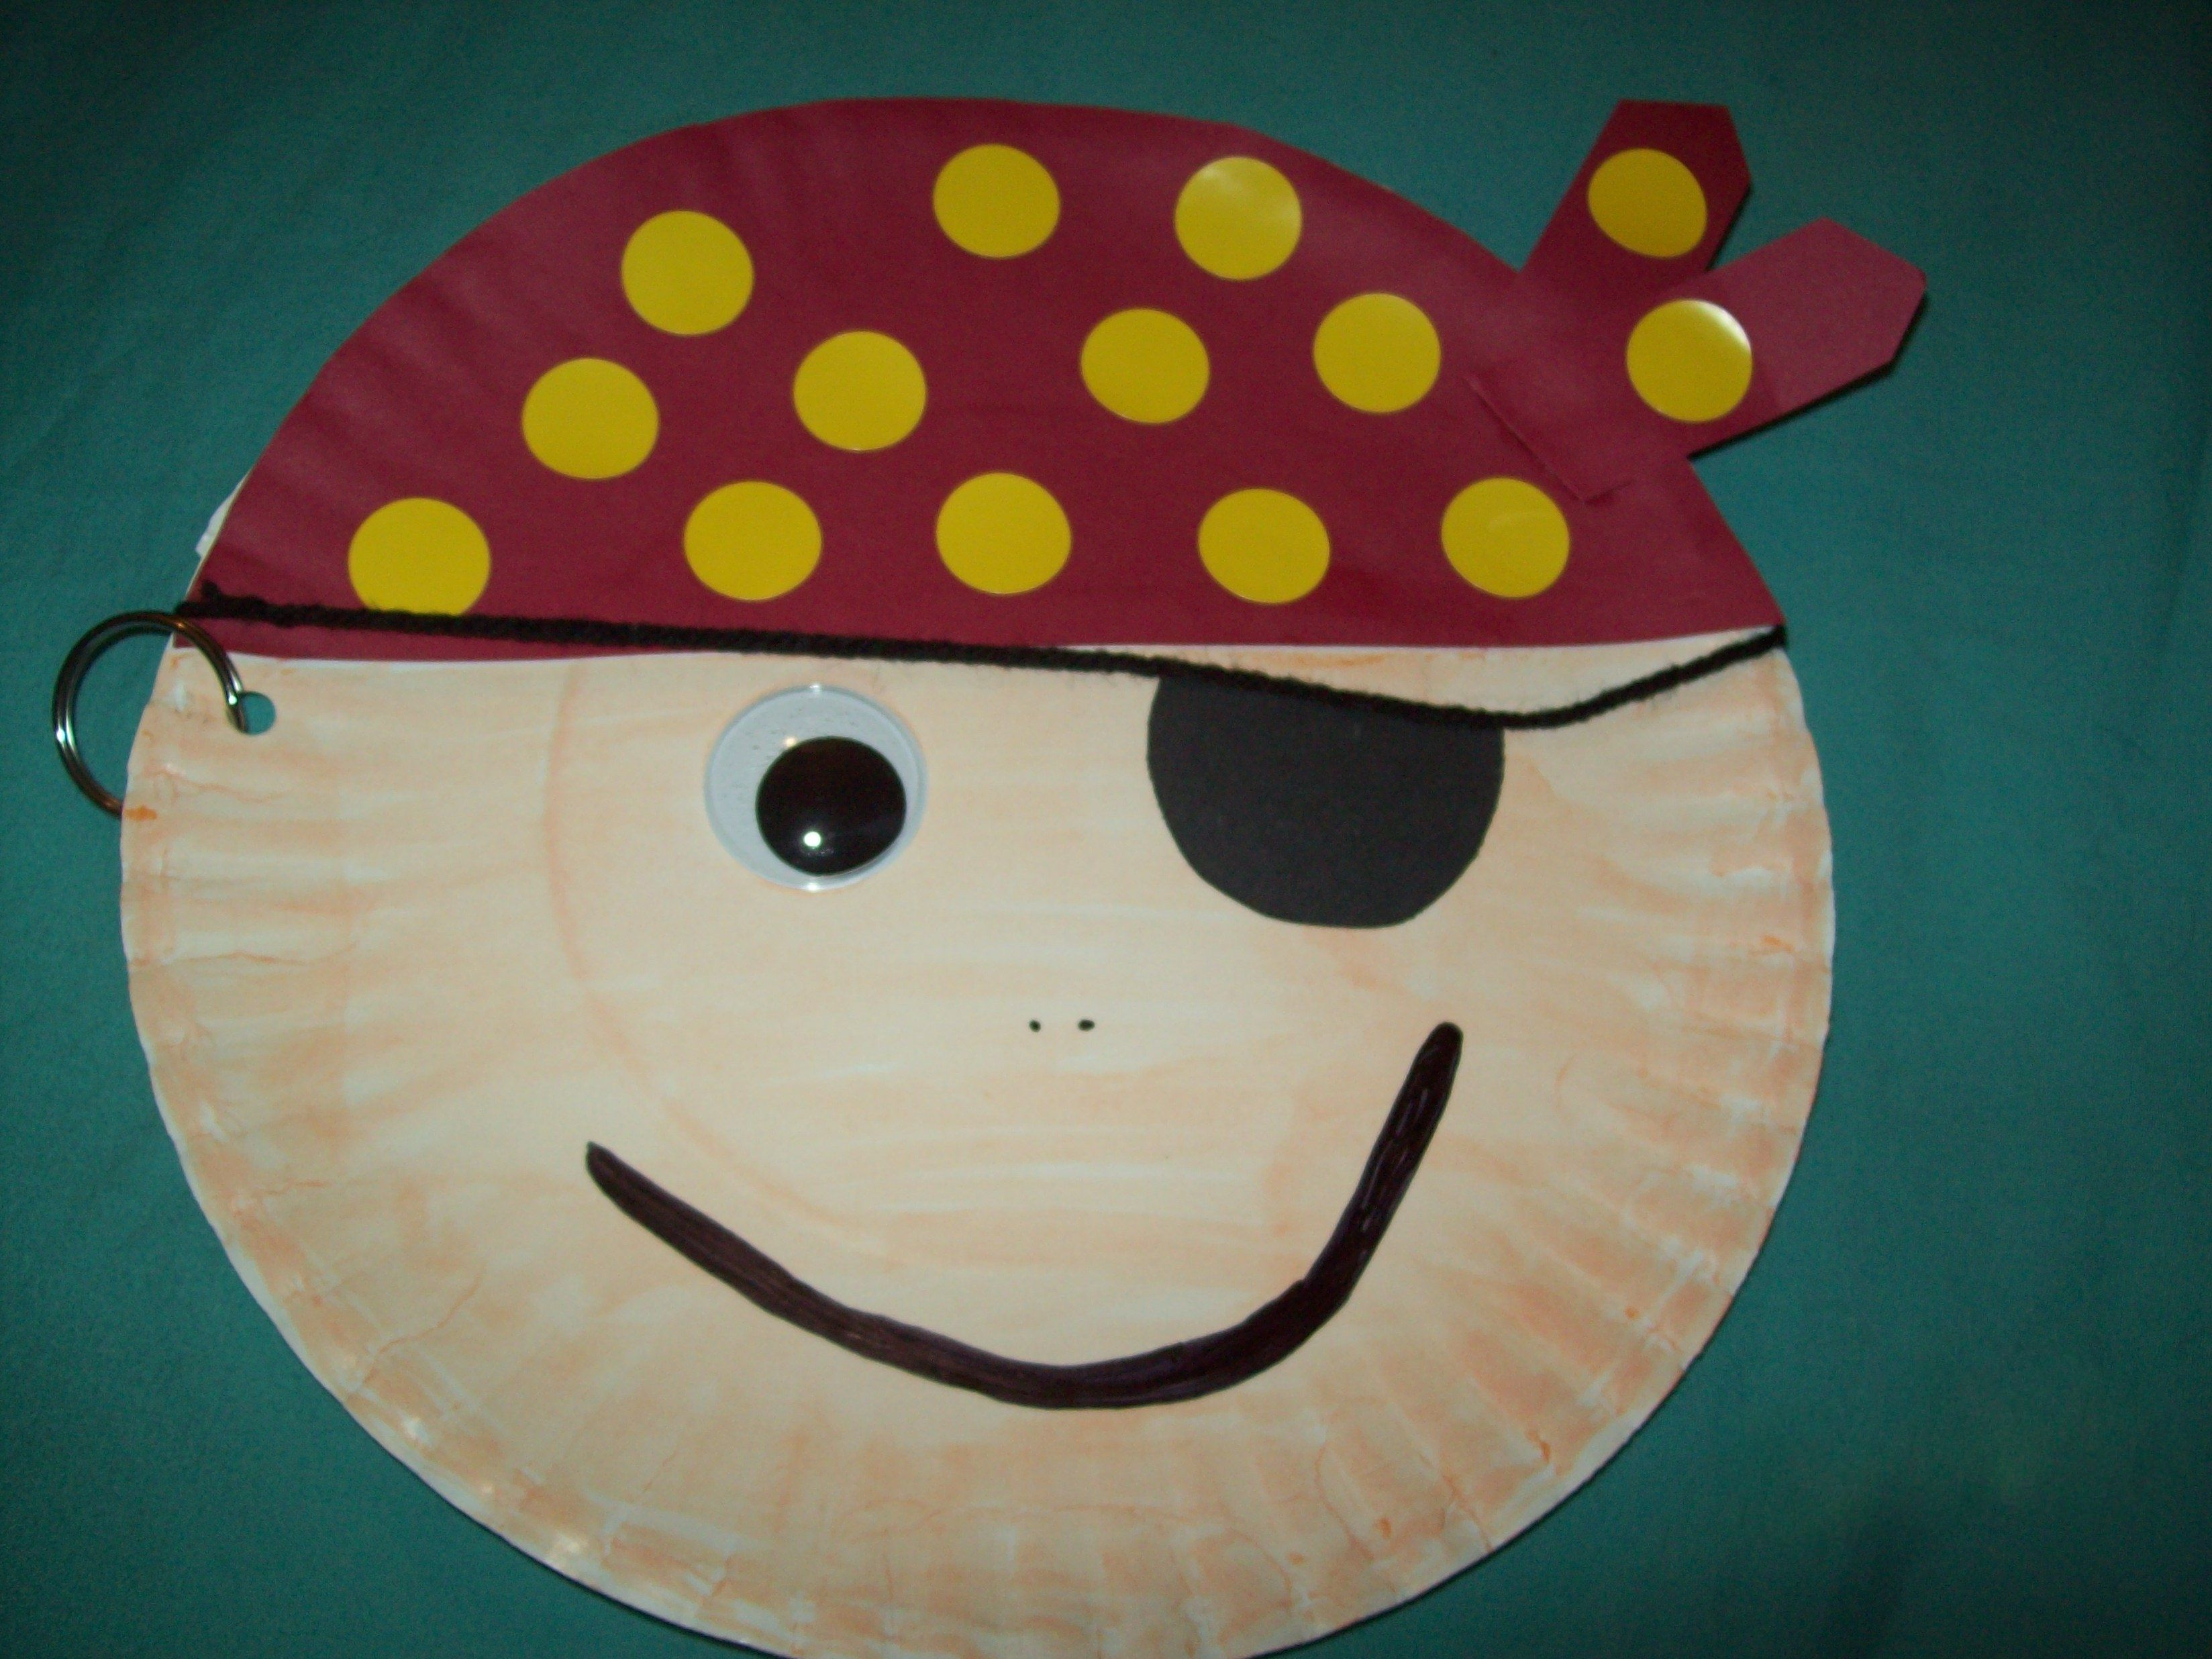 Pirate Craft Ideas For Kids Part - 20: Paper Plate Pirate Craft For Kids.